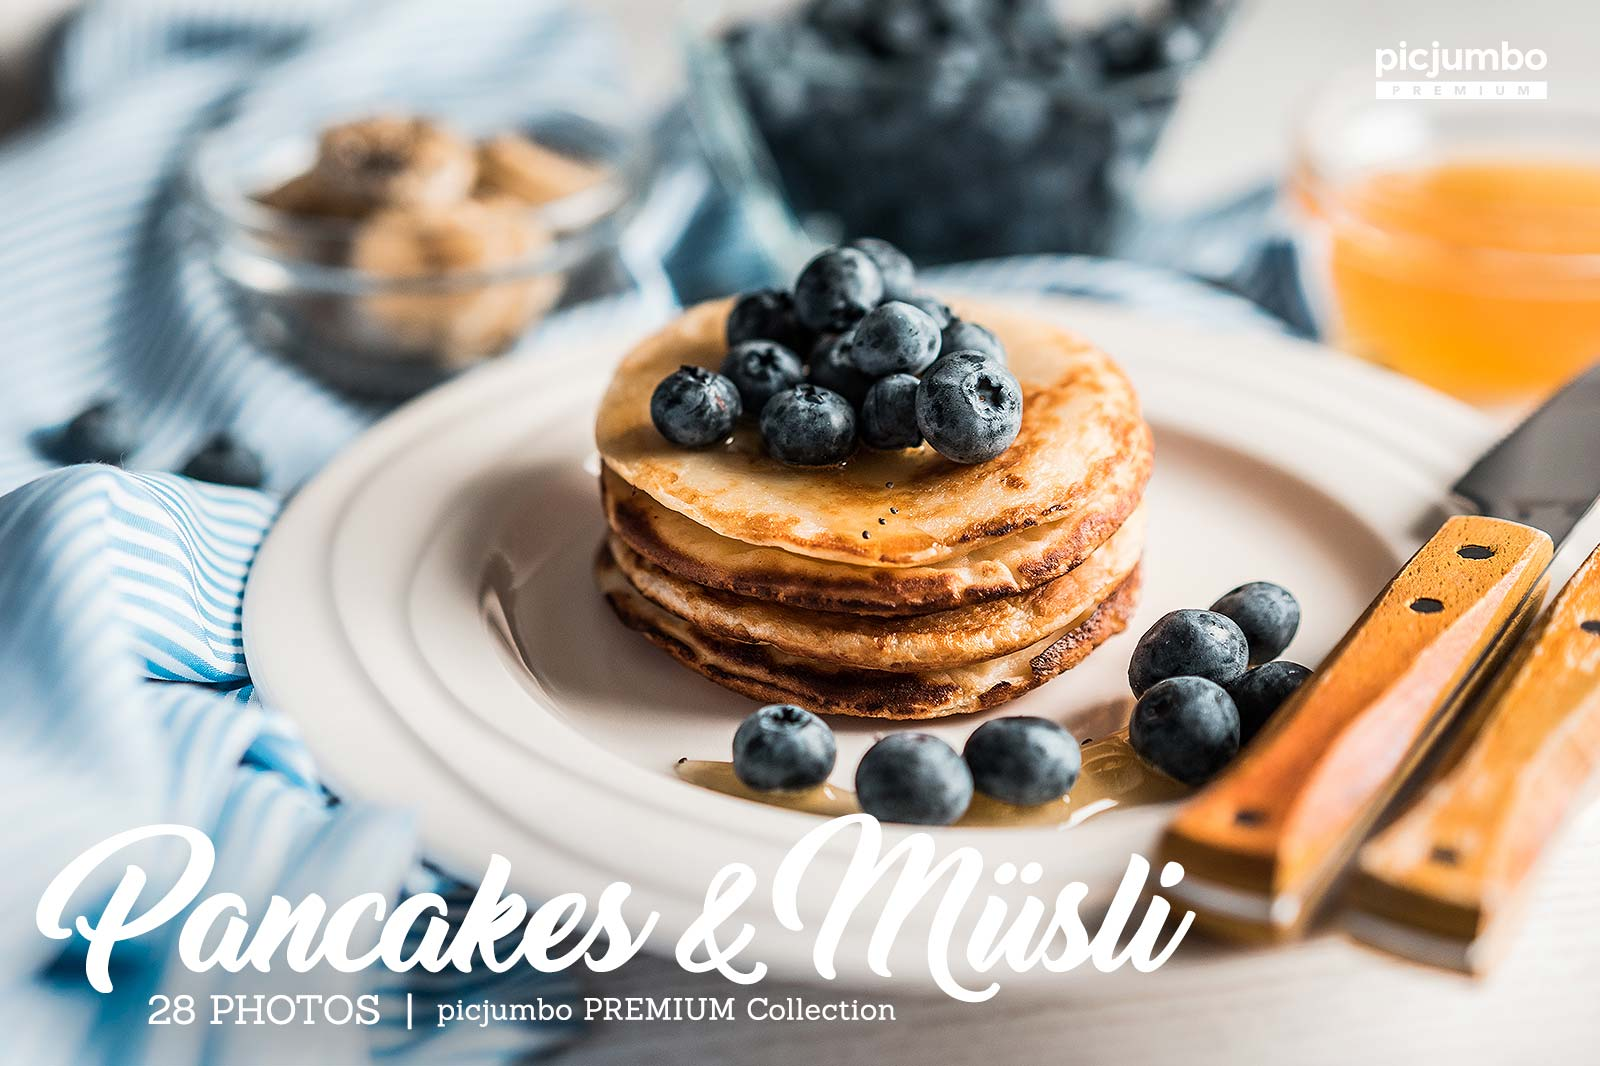 Pancakes & Müsli — Join PREMIUM and get instant access to this collection!